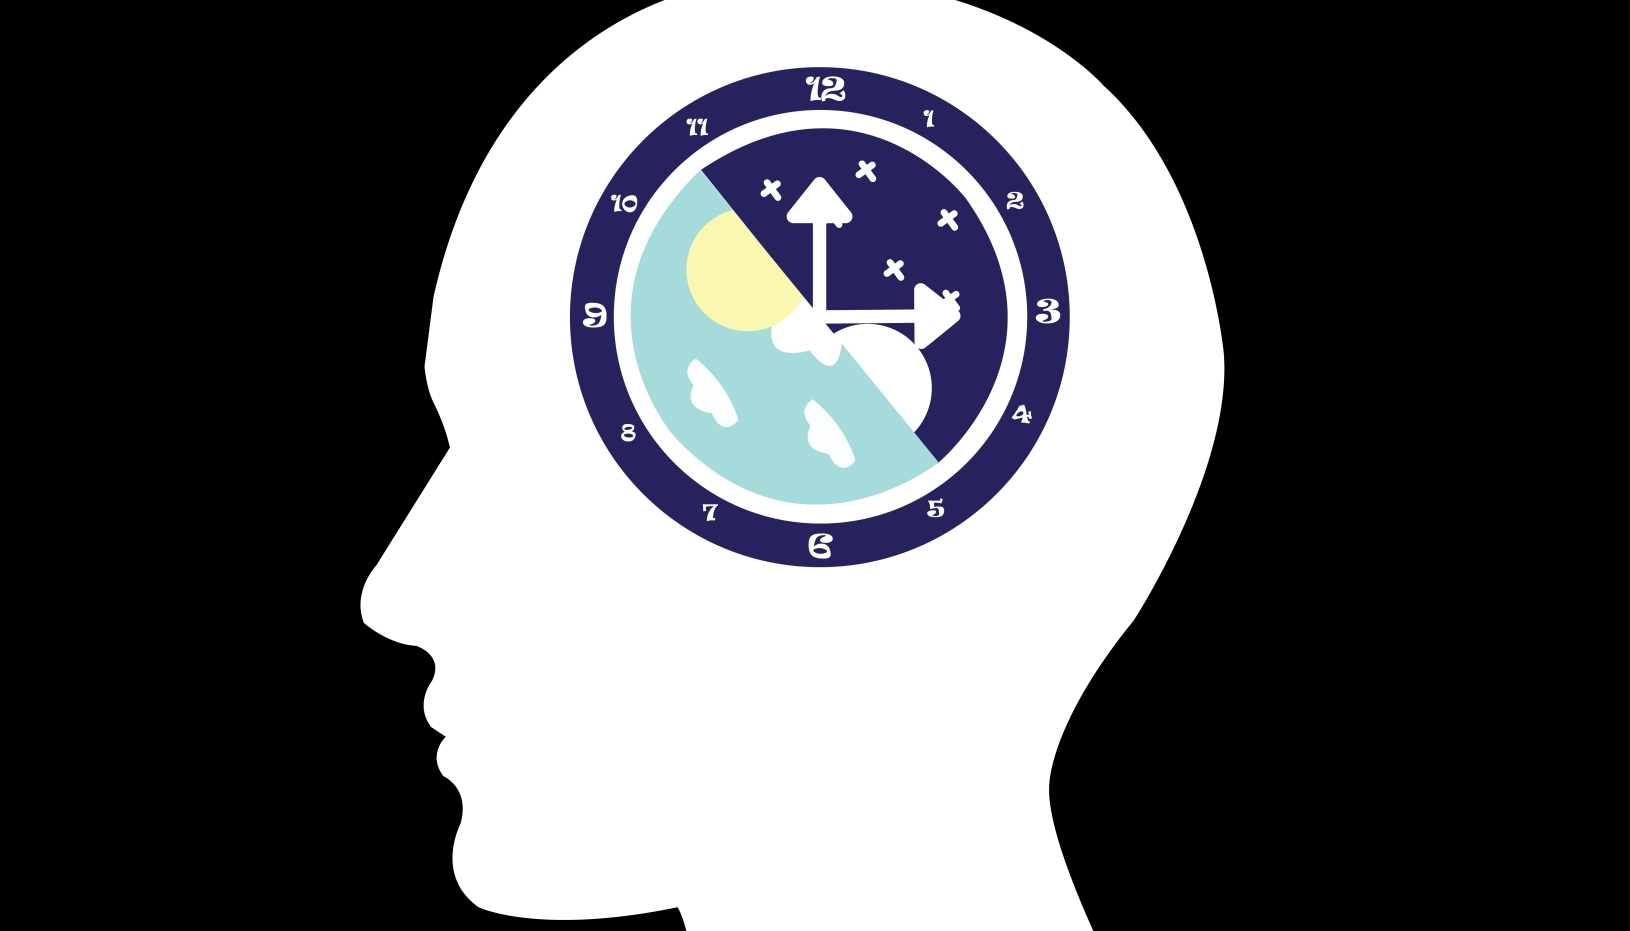 66ff74c2d 10 things you didn't know about how circadian rhythm affects your health |  ISRAEL21c